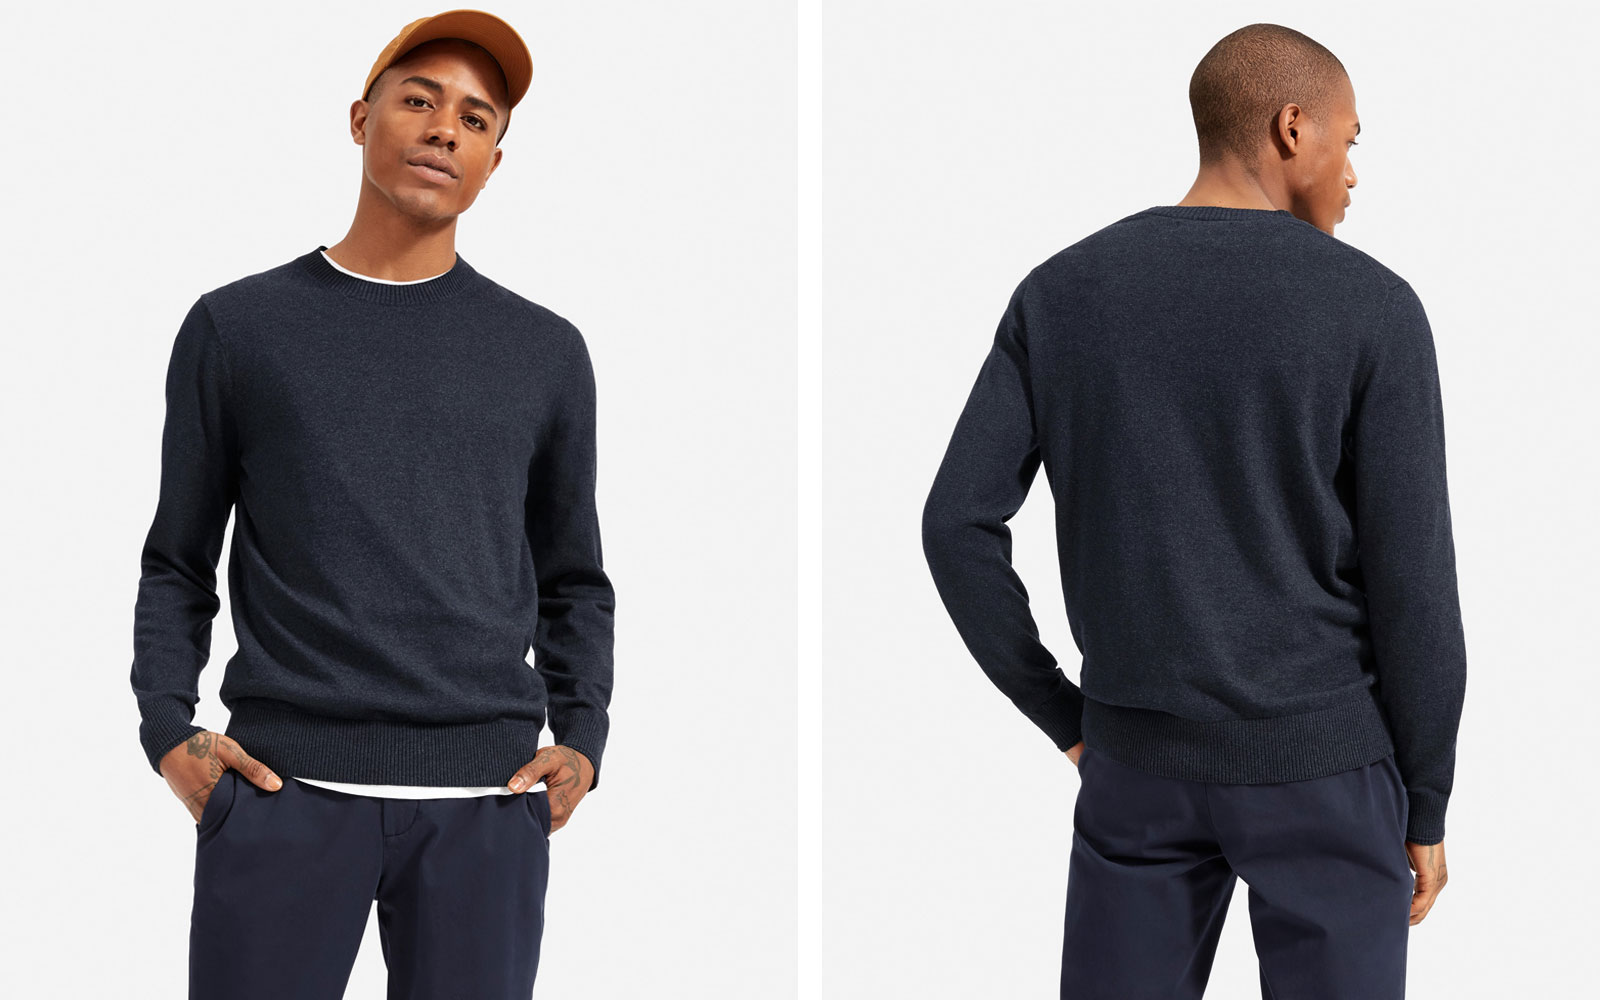 Man wearing navy long sleeve sweater